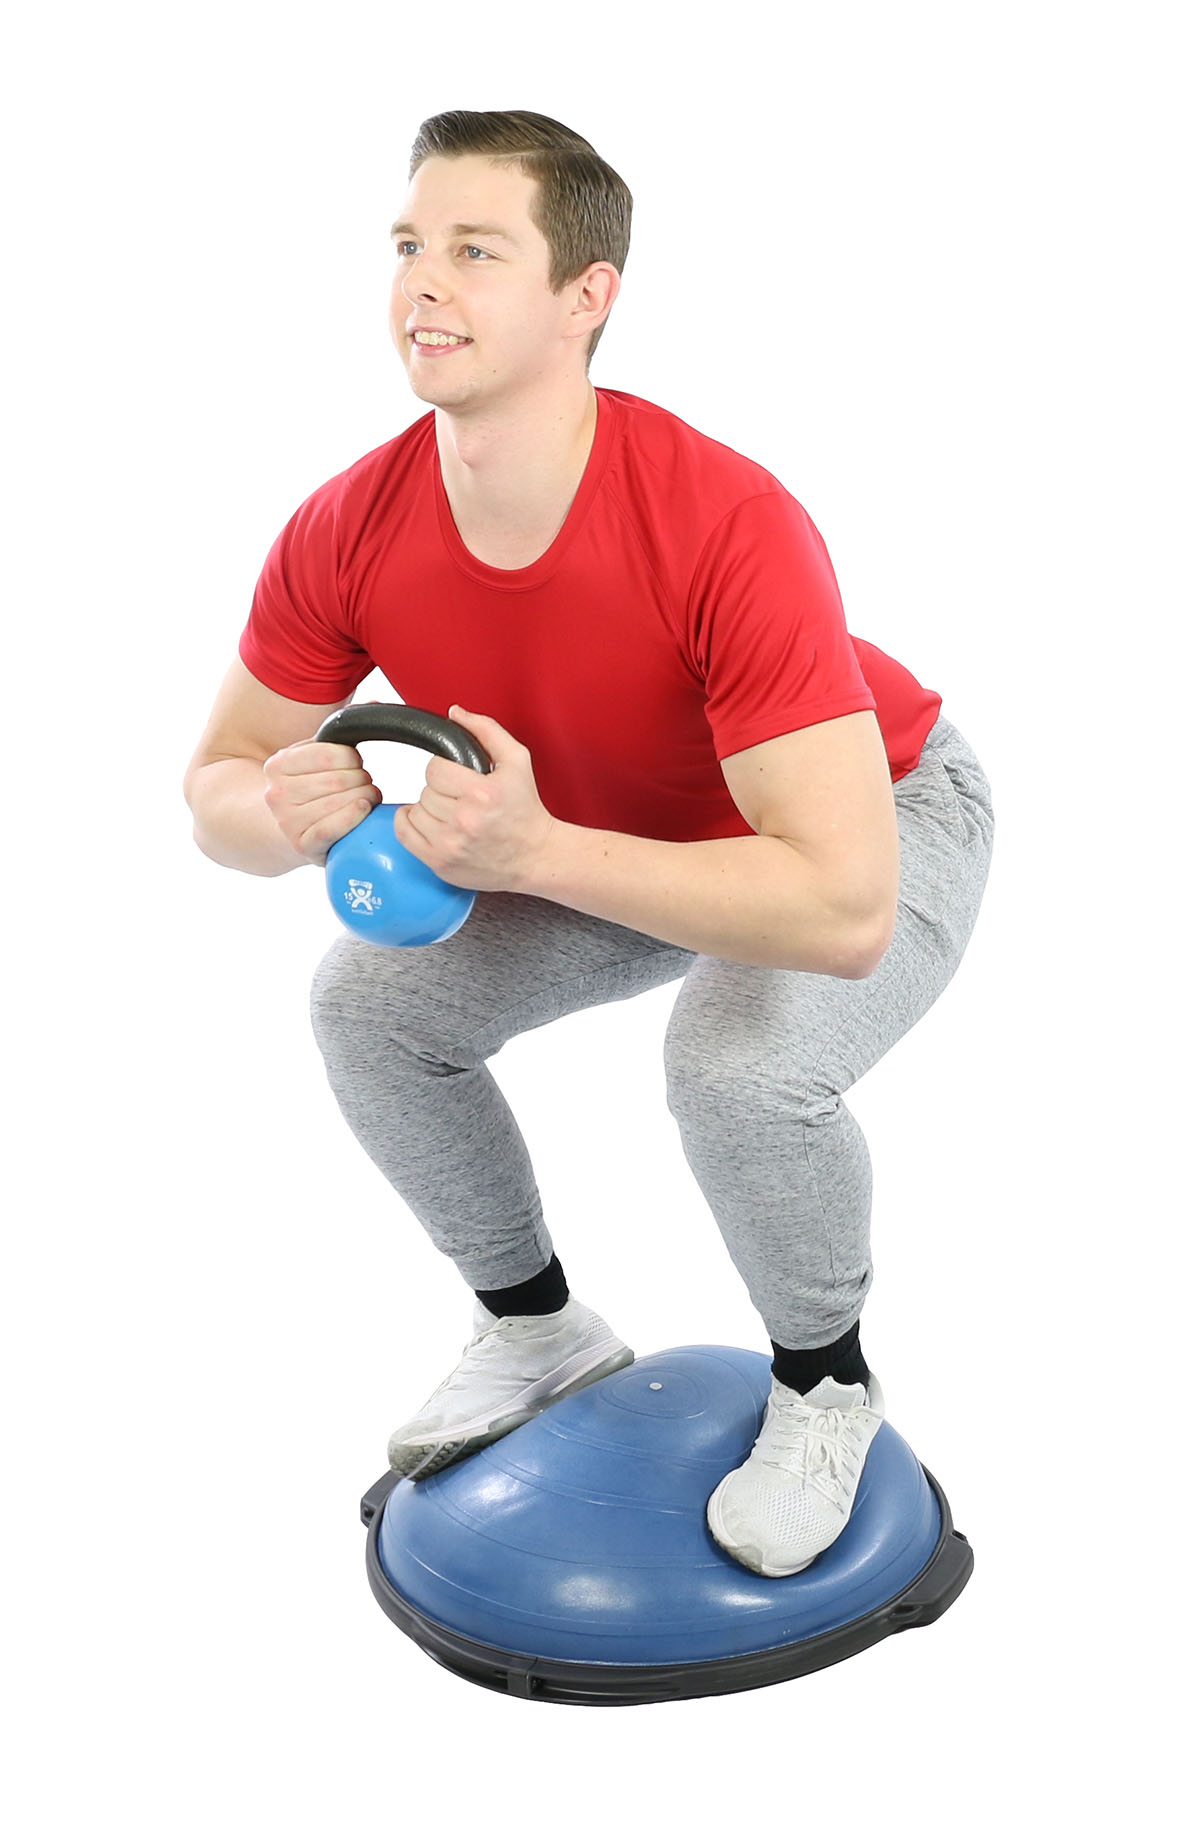 inflatable-core-training.jpg